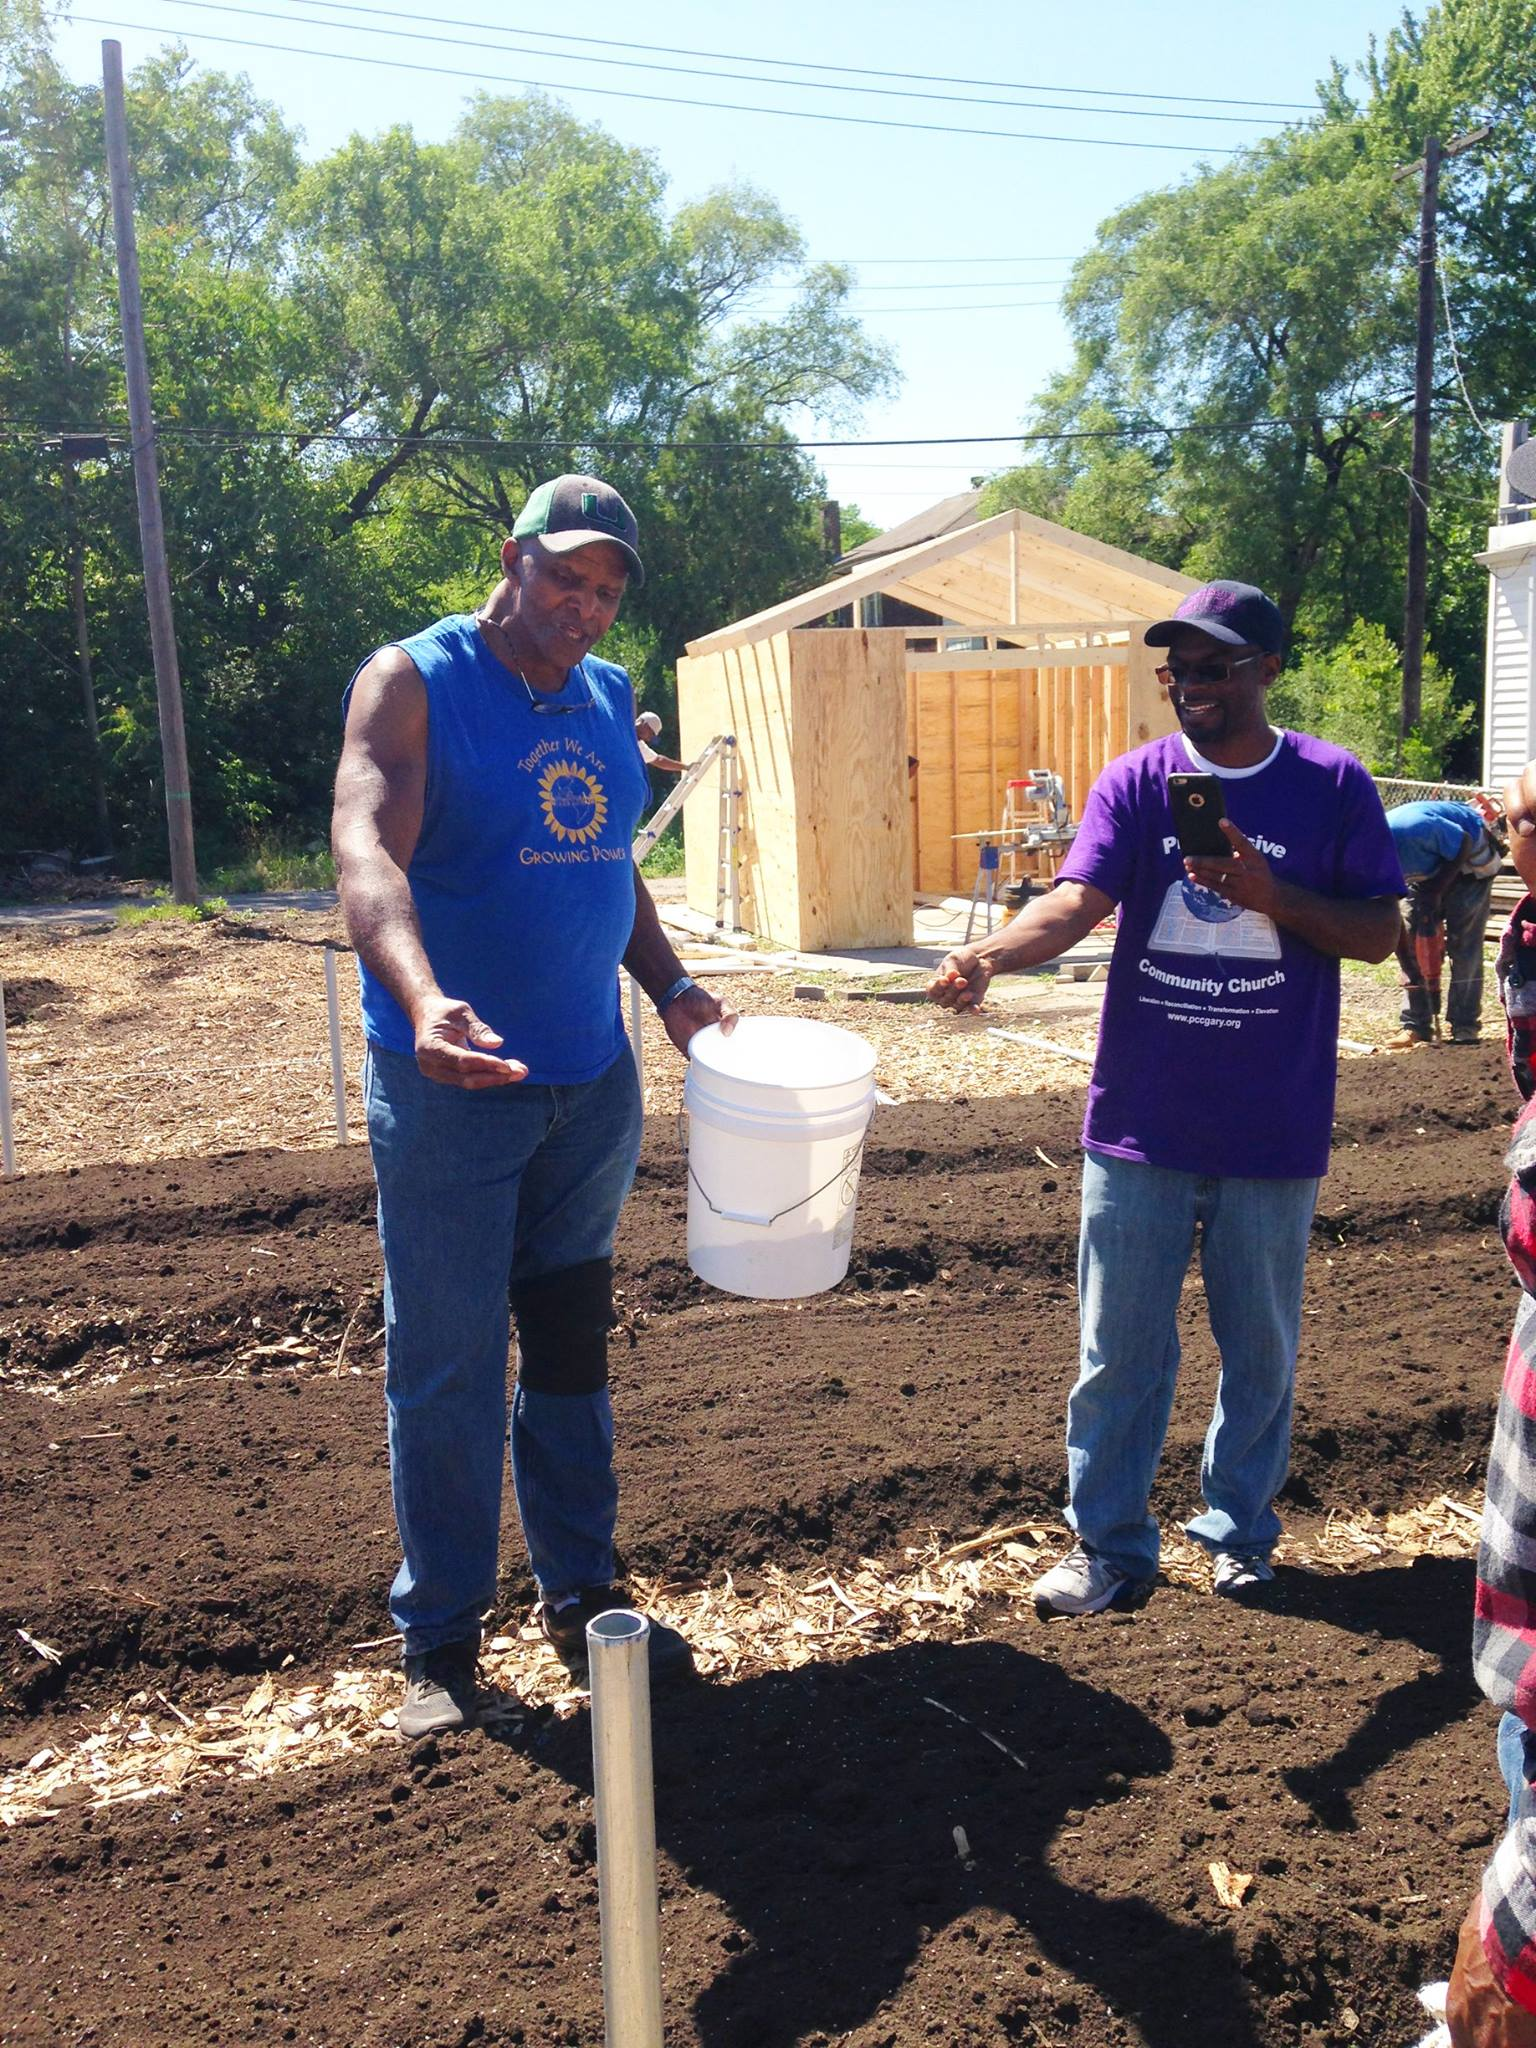 Will Allen demonstrates hand-sowing seeds with Pastor Curtis Whittaker